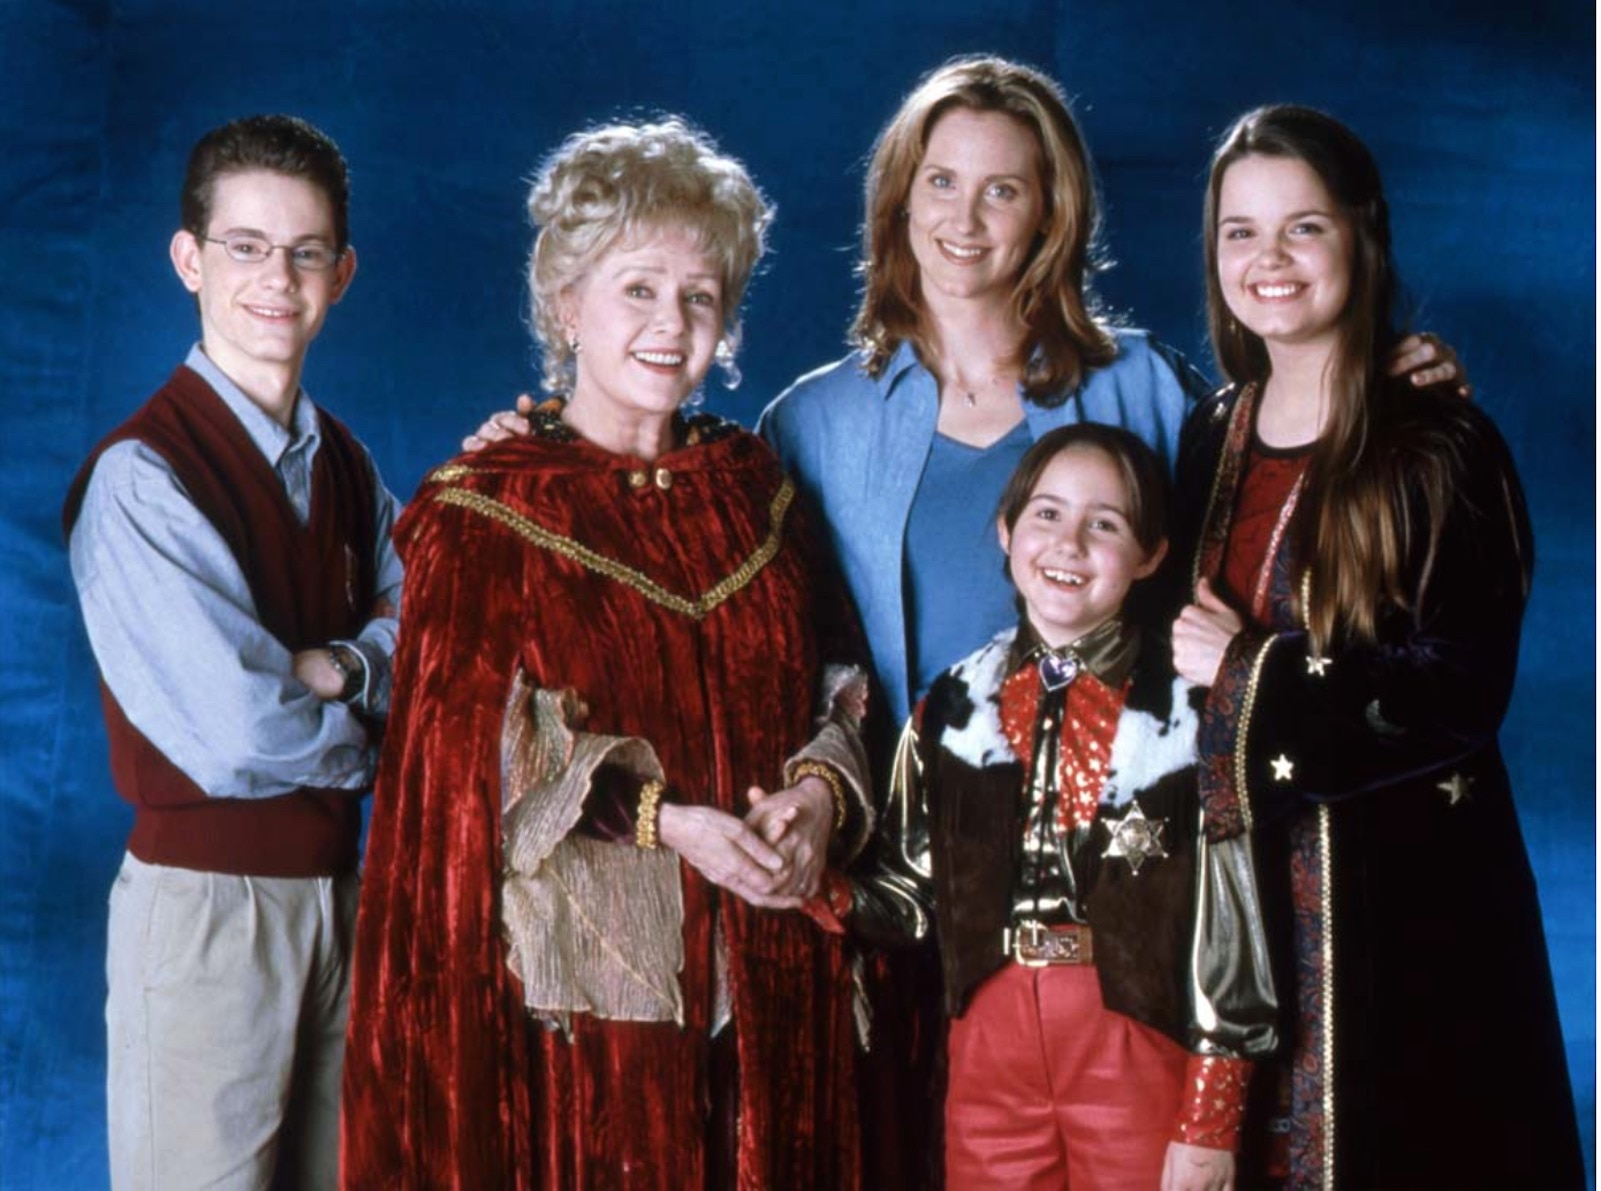 The Halloweentown Cast Reunited in Honor of Late Debbie